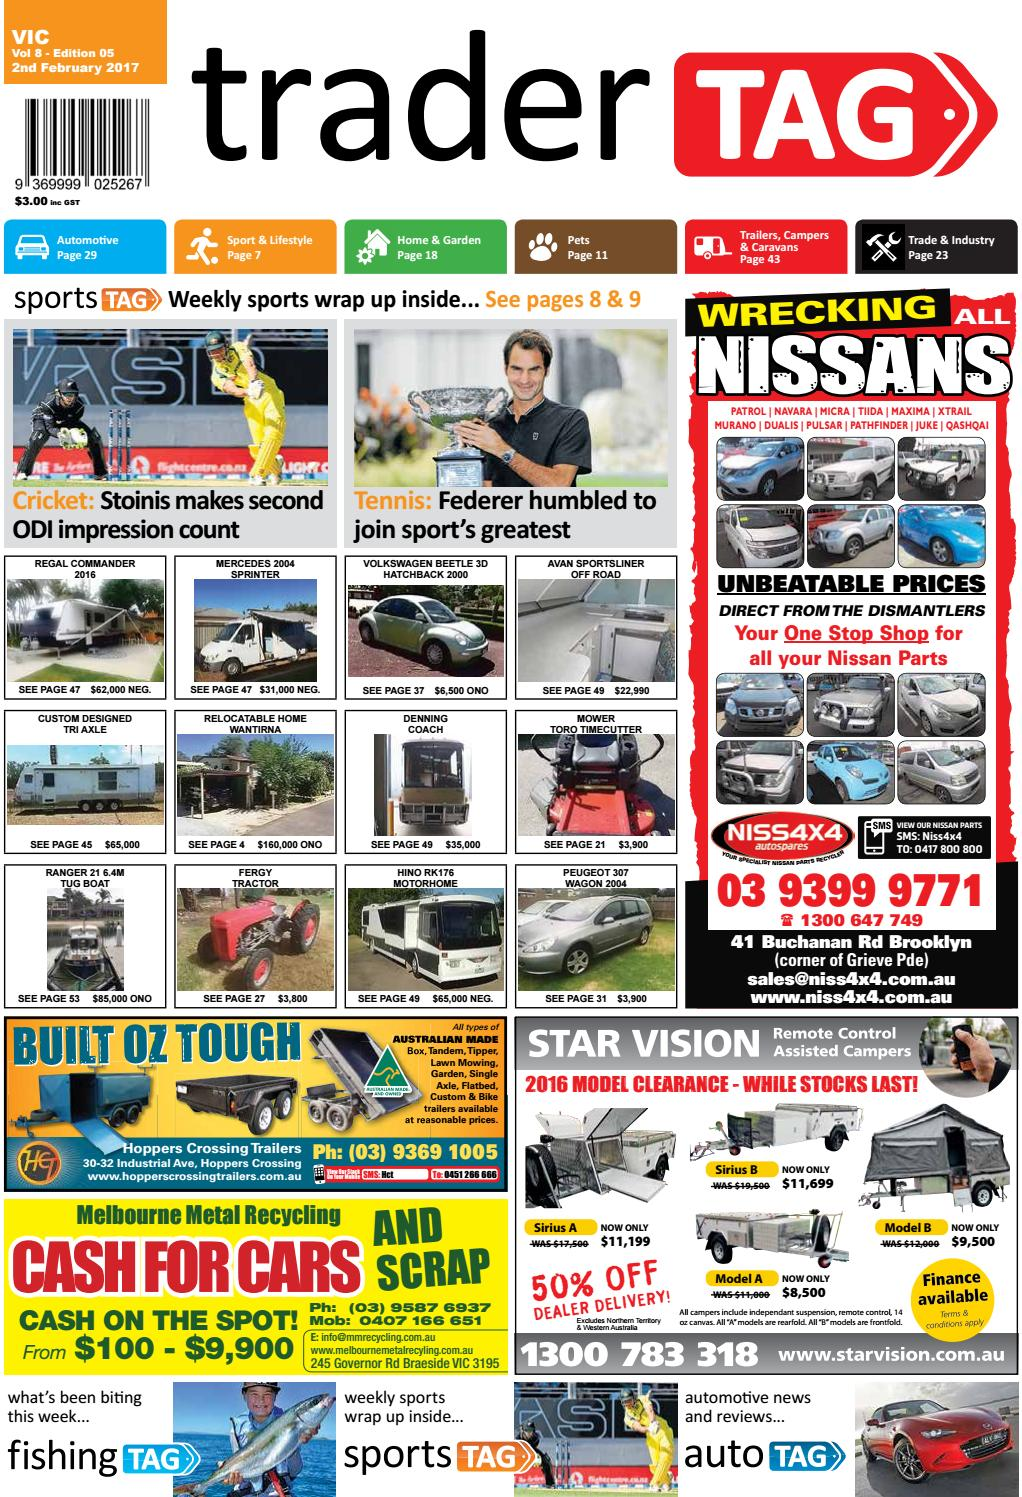 tradertag victoria edition 05 2017 by tradertag design issuu  Neue Bailey Of Hollywood Wp105 Hut Herren Outlet P 2127 #6